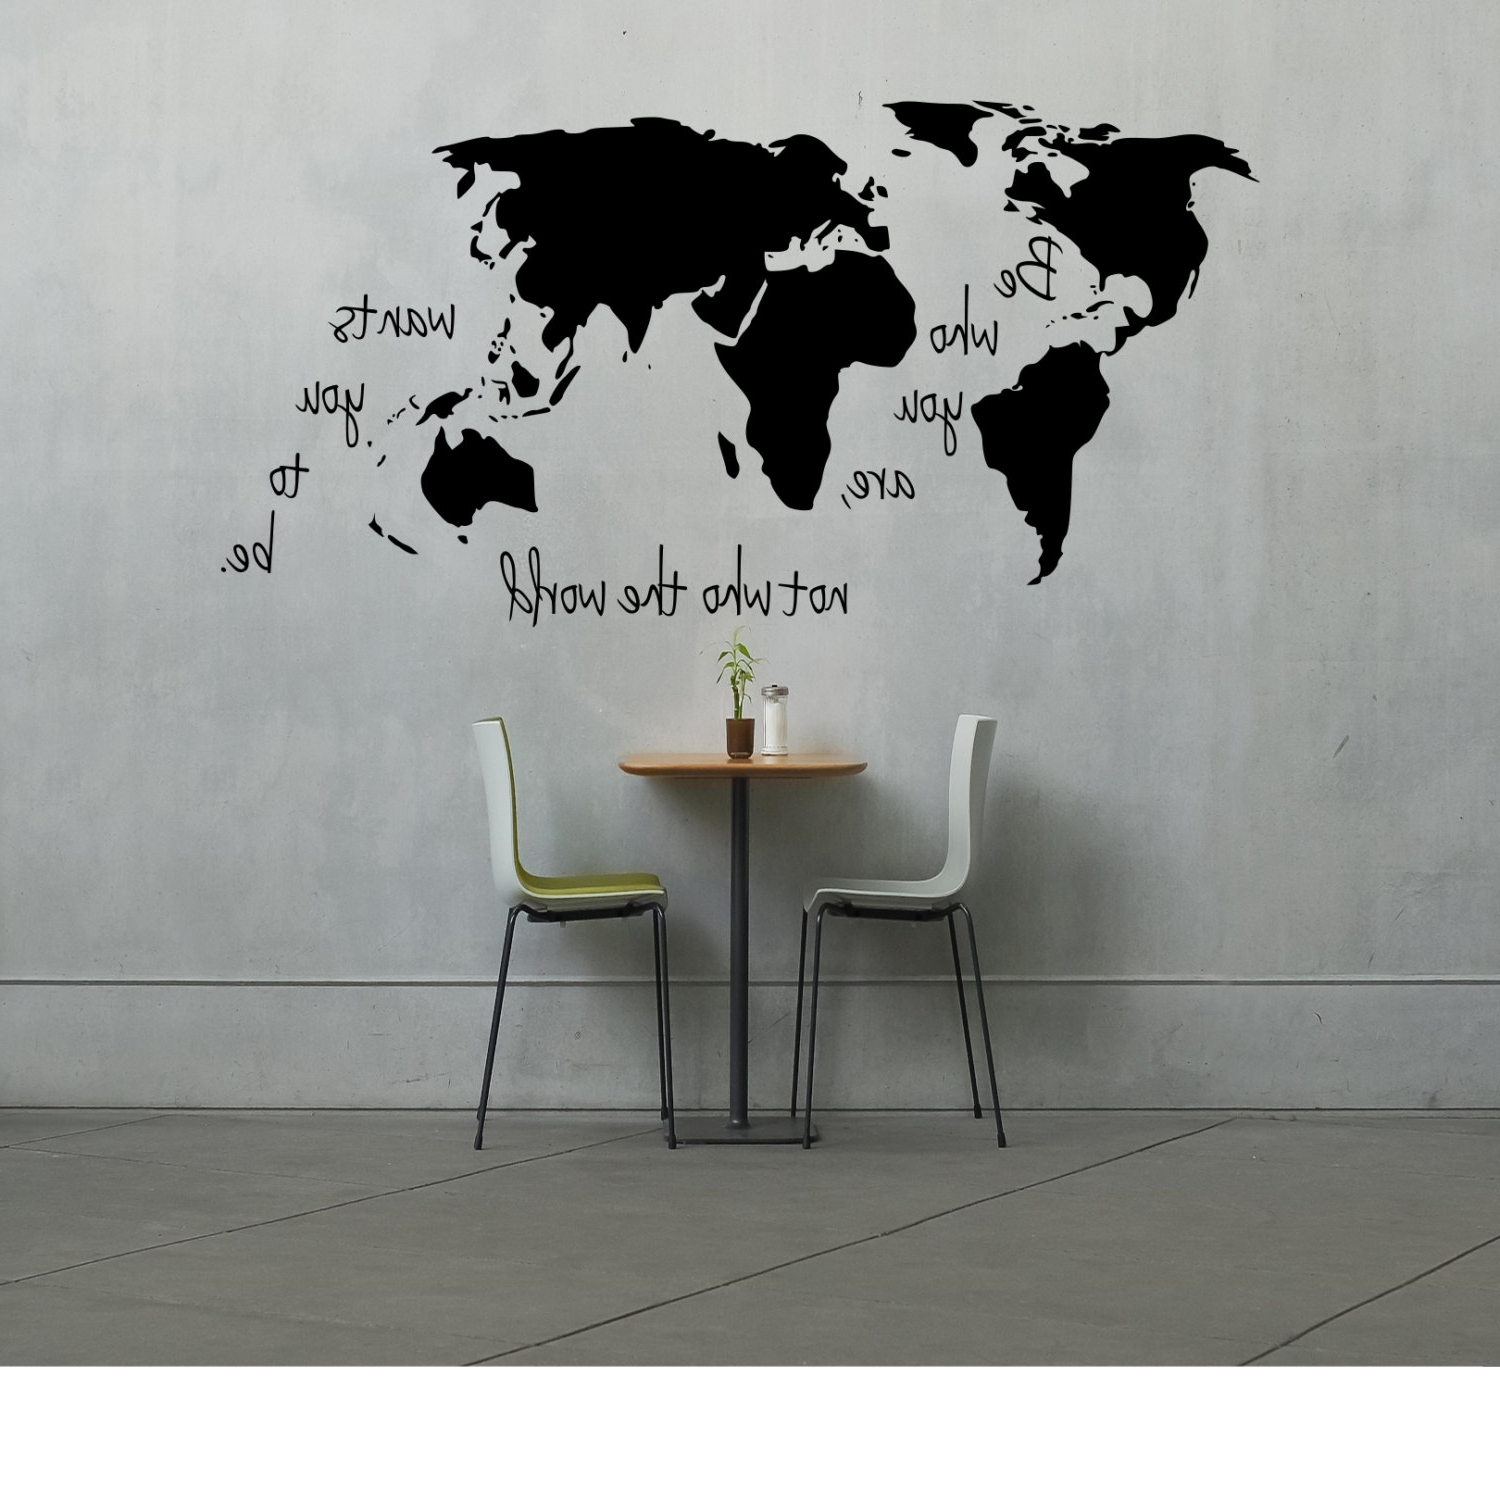 Widely Used Large World Map Decal Be Who You Are Not The Wants And For Wall Inside Wall Art Stickers World Map (View 10 of 20)